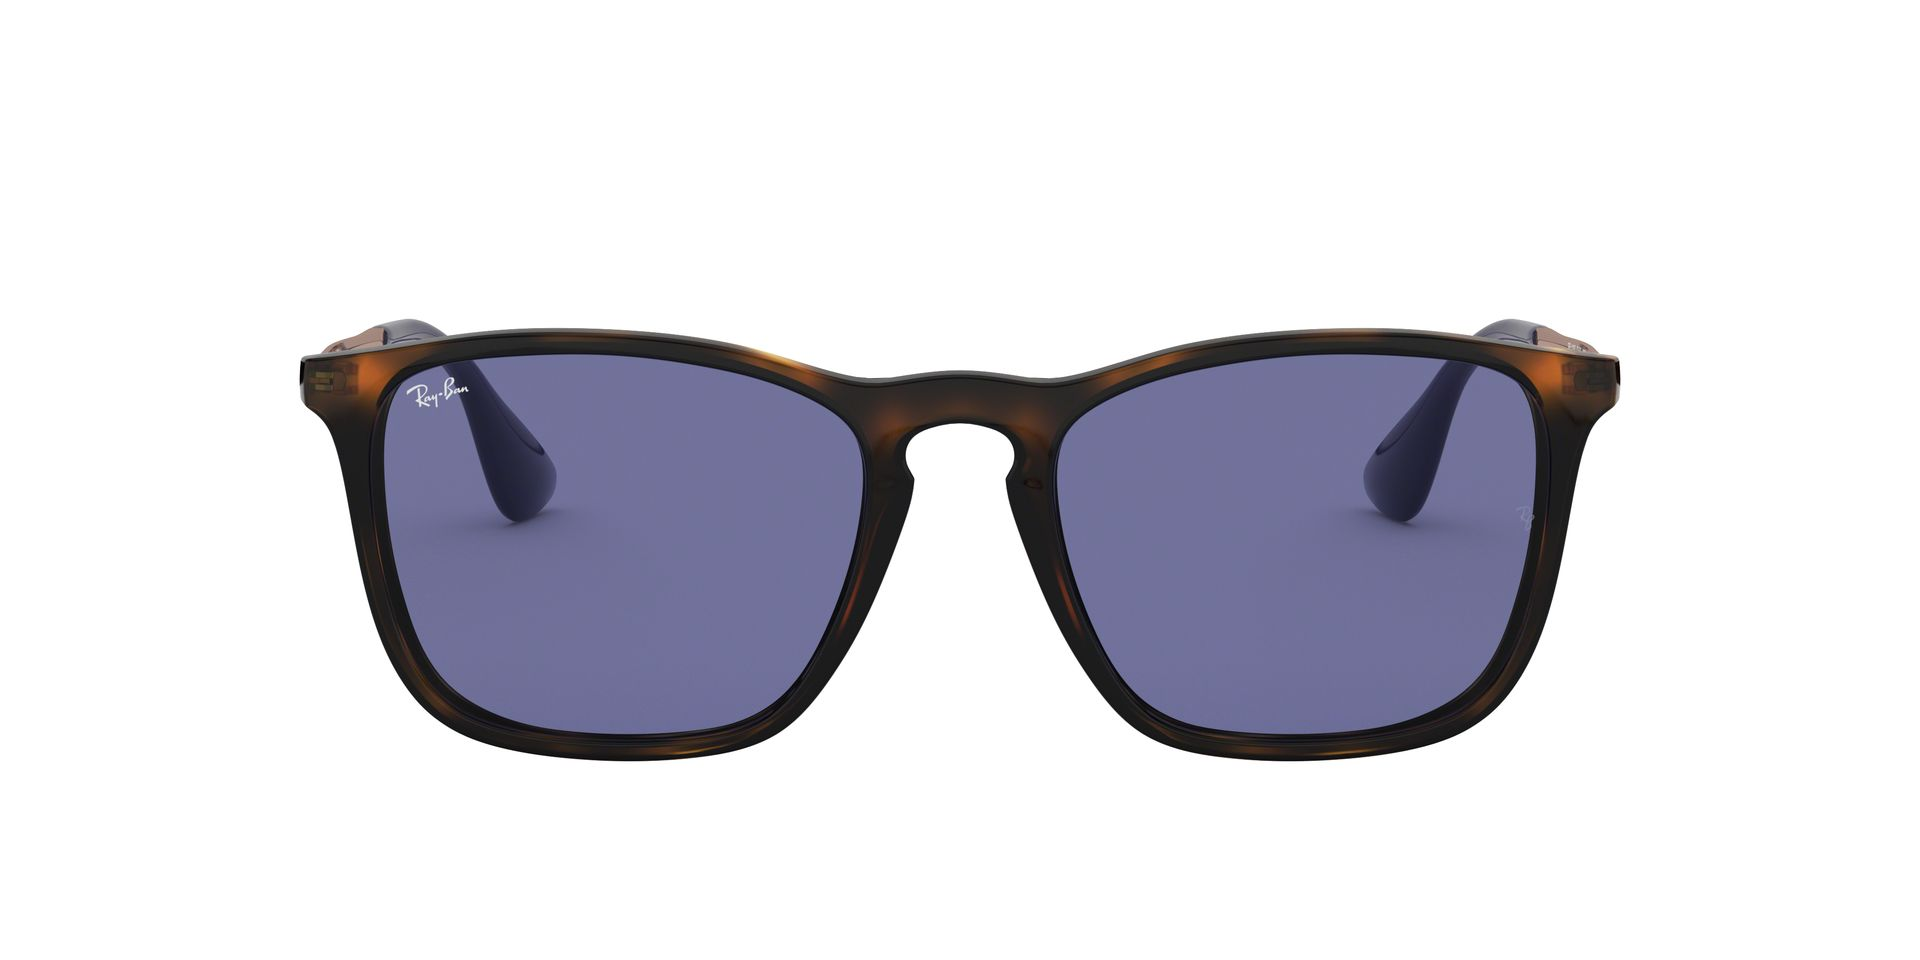 RAY-BAN CHRIS RB 4187 639276 VIO-360